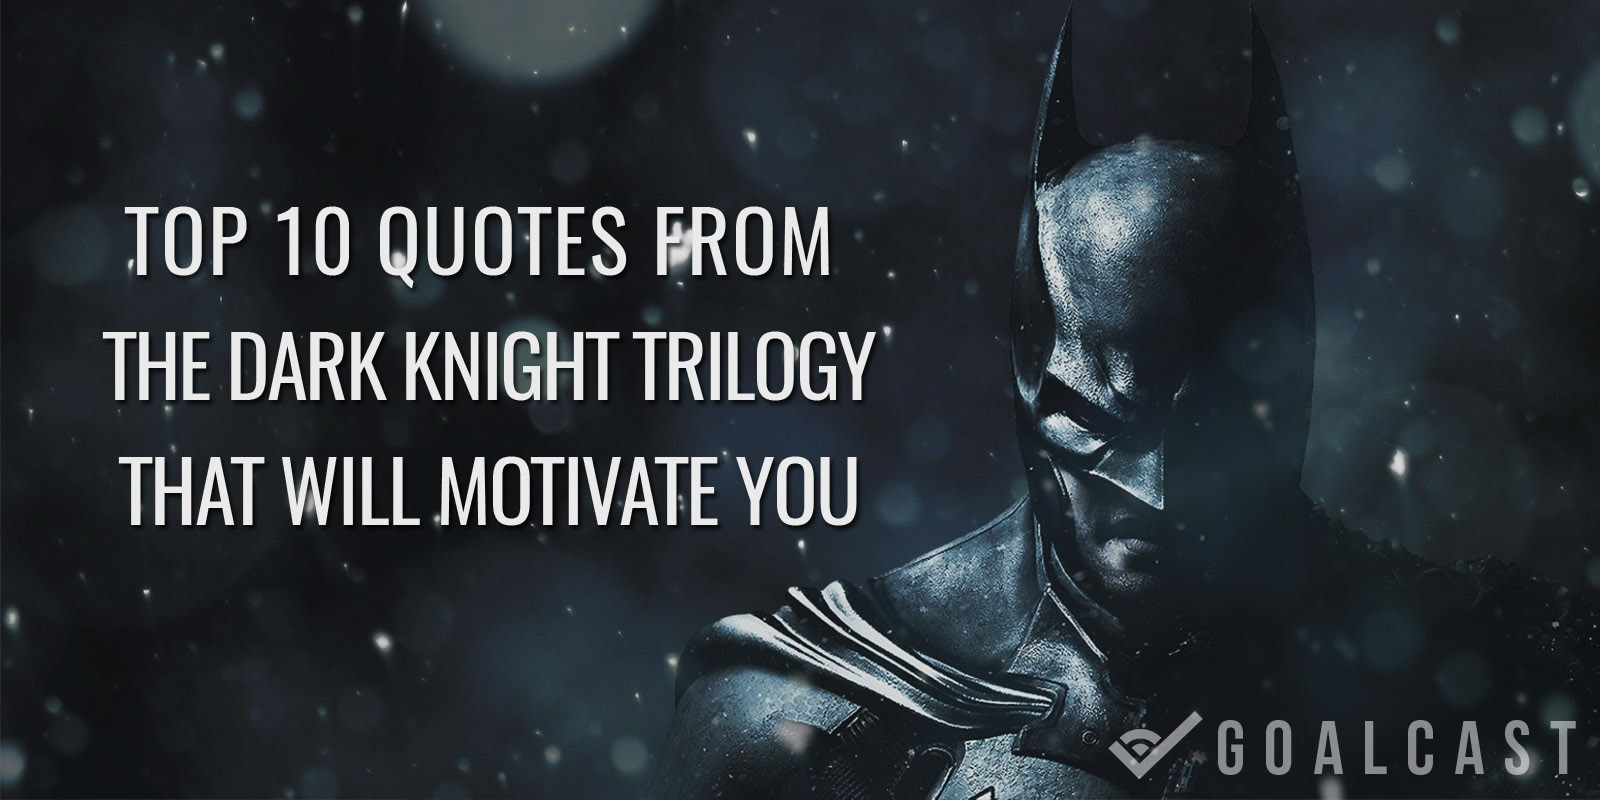 Why Do We Fall Bruce Wallpaper Top 10 Quotes From Batman Dark Knight Trilogy That Will